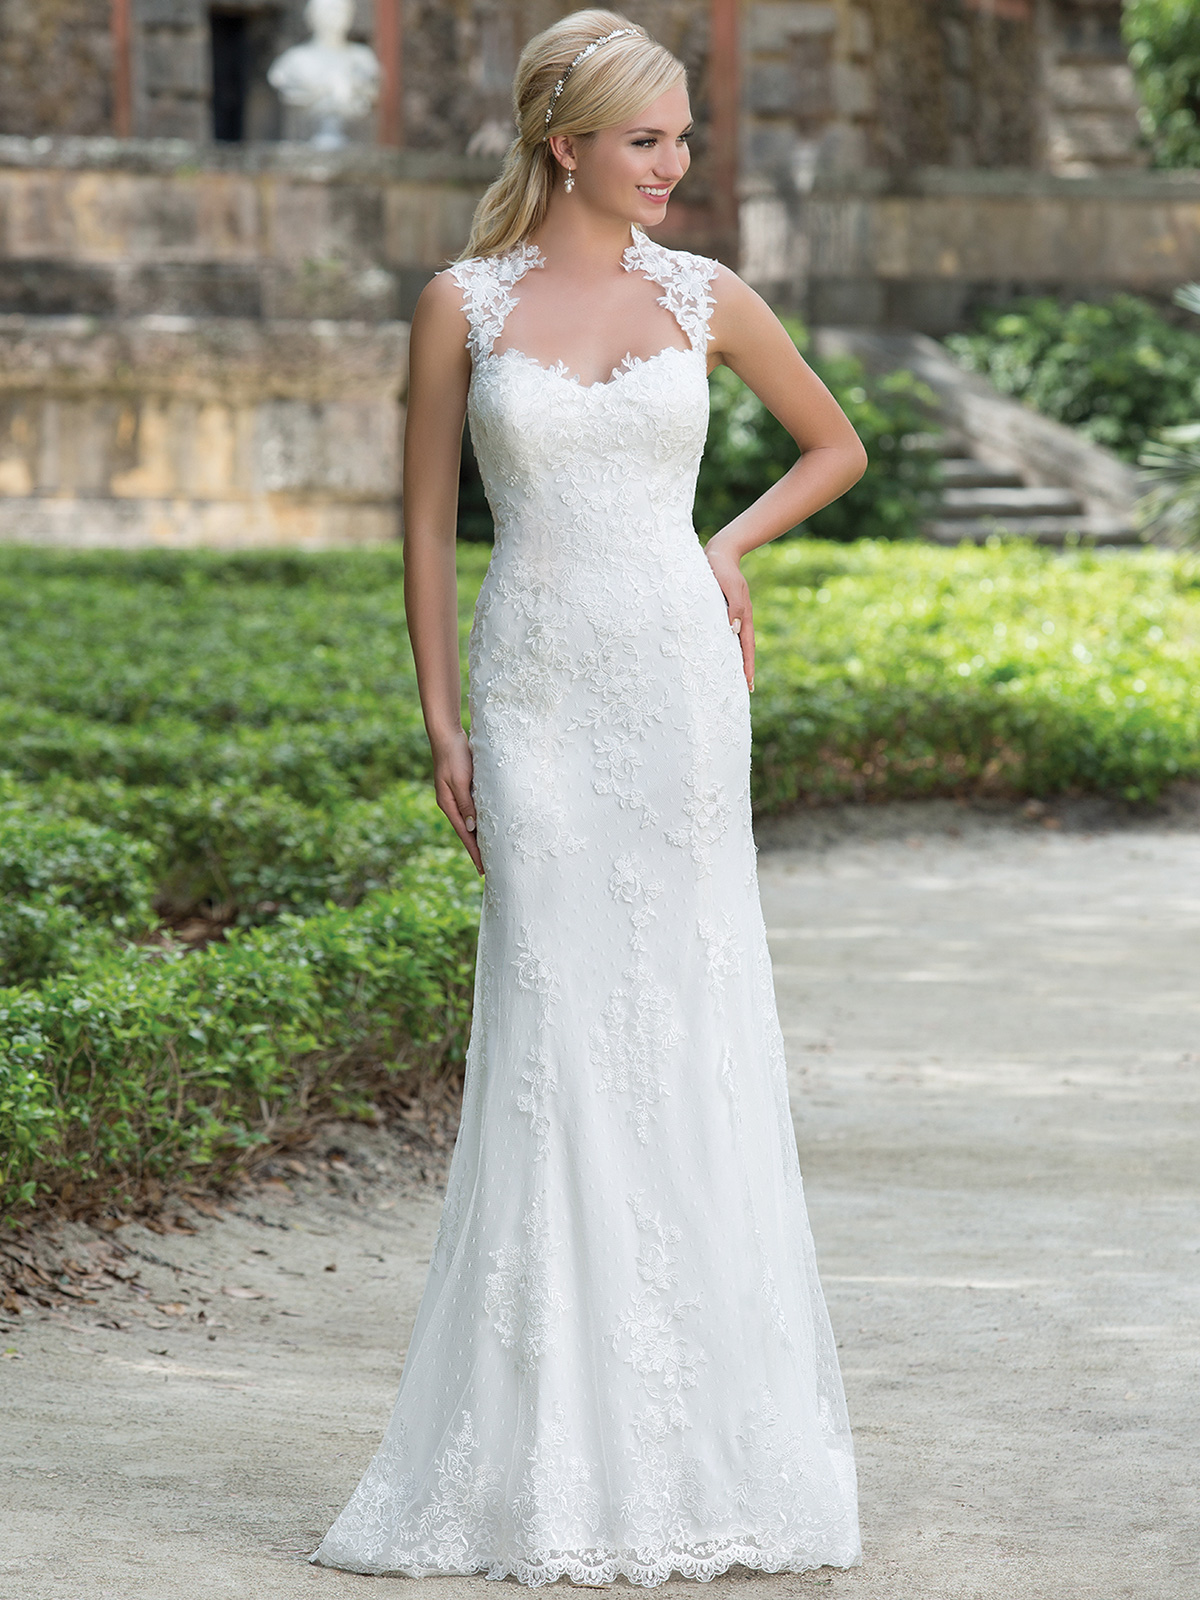 latest collection of straight wedding dresses straight wedding dresses Straight wedding dresses